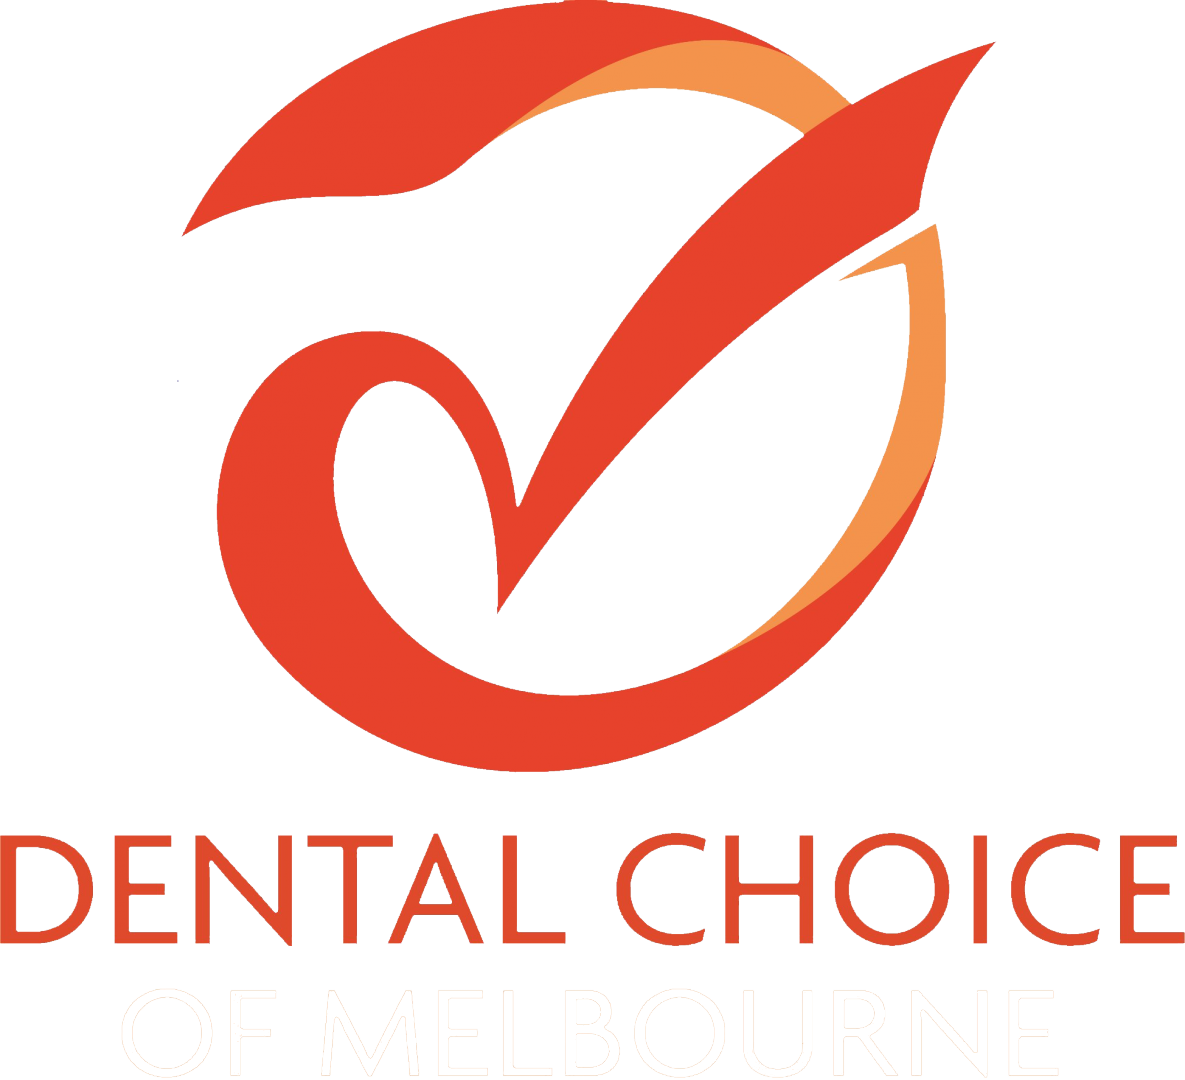 Dental Choice of Melbourne